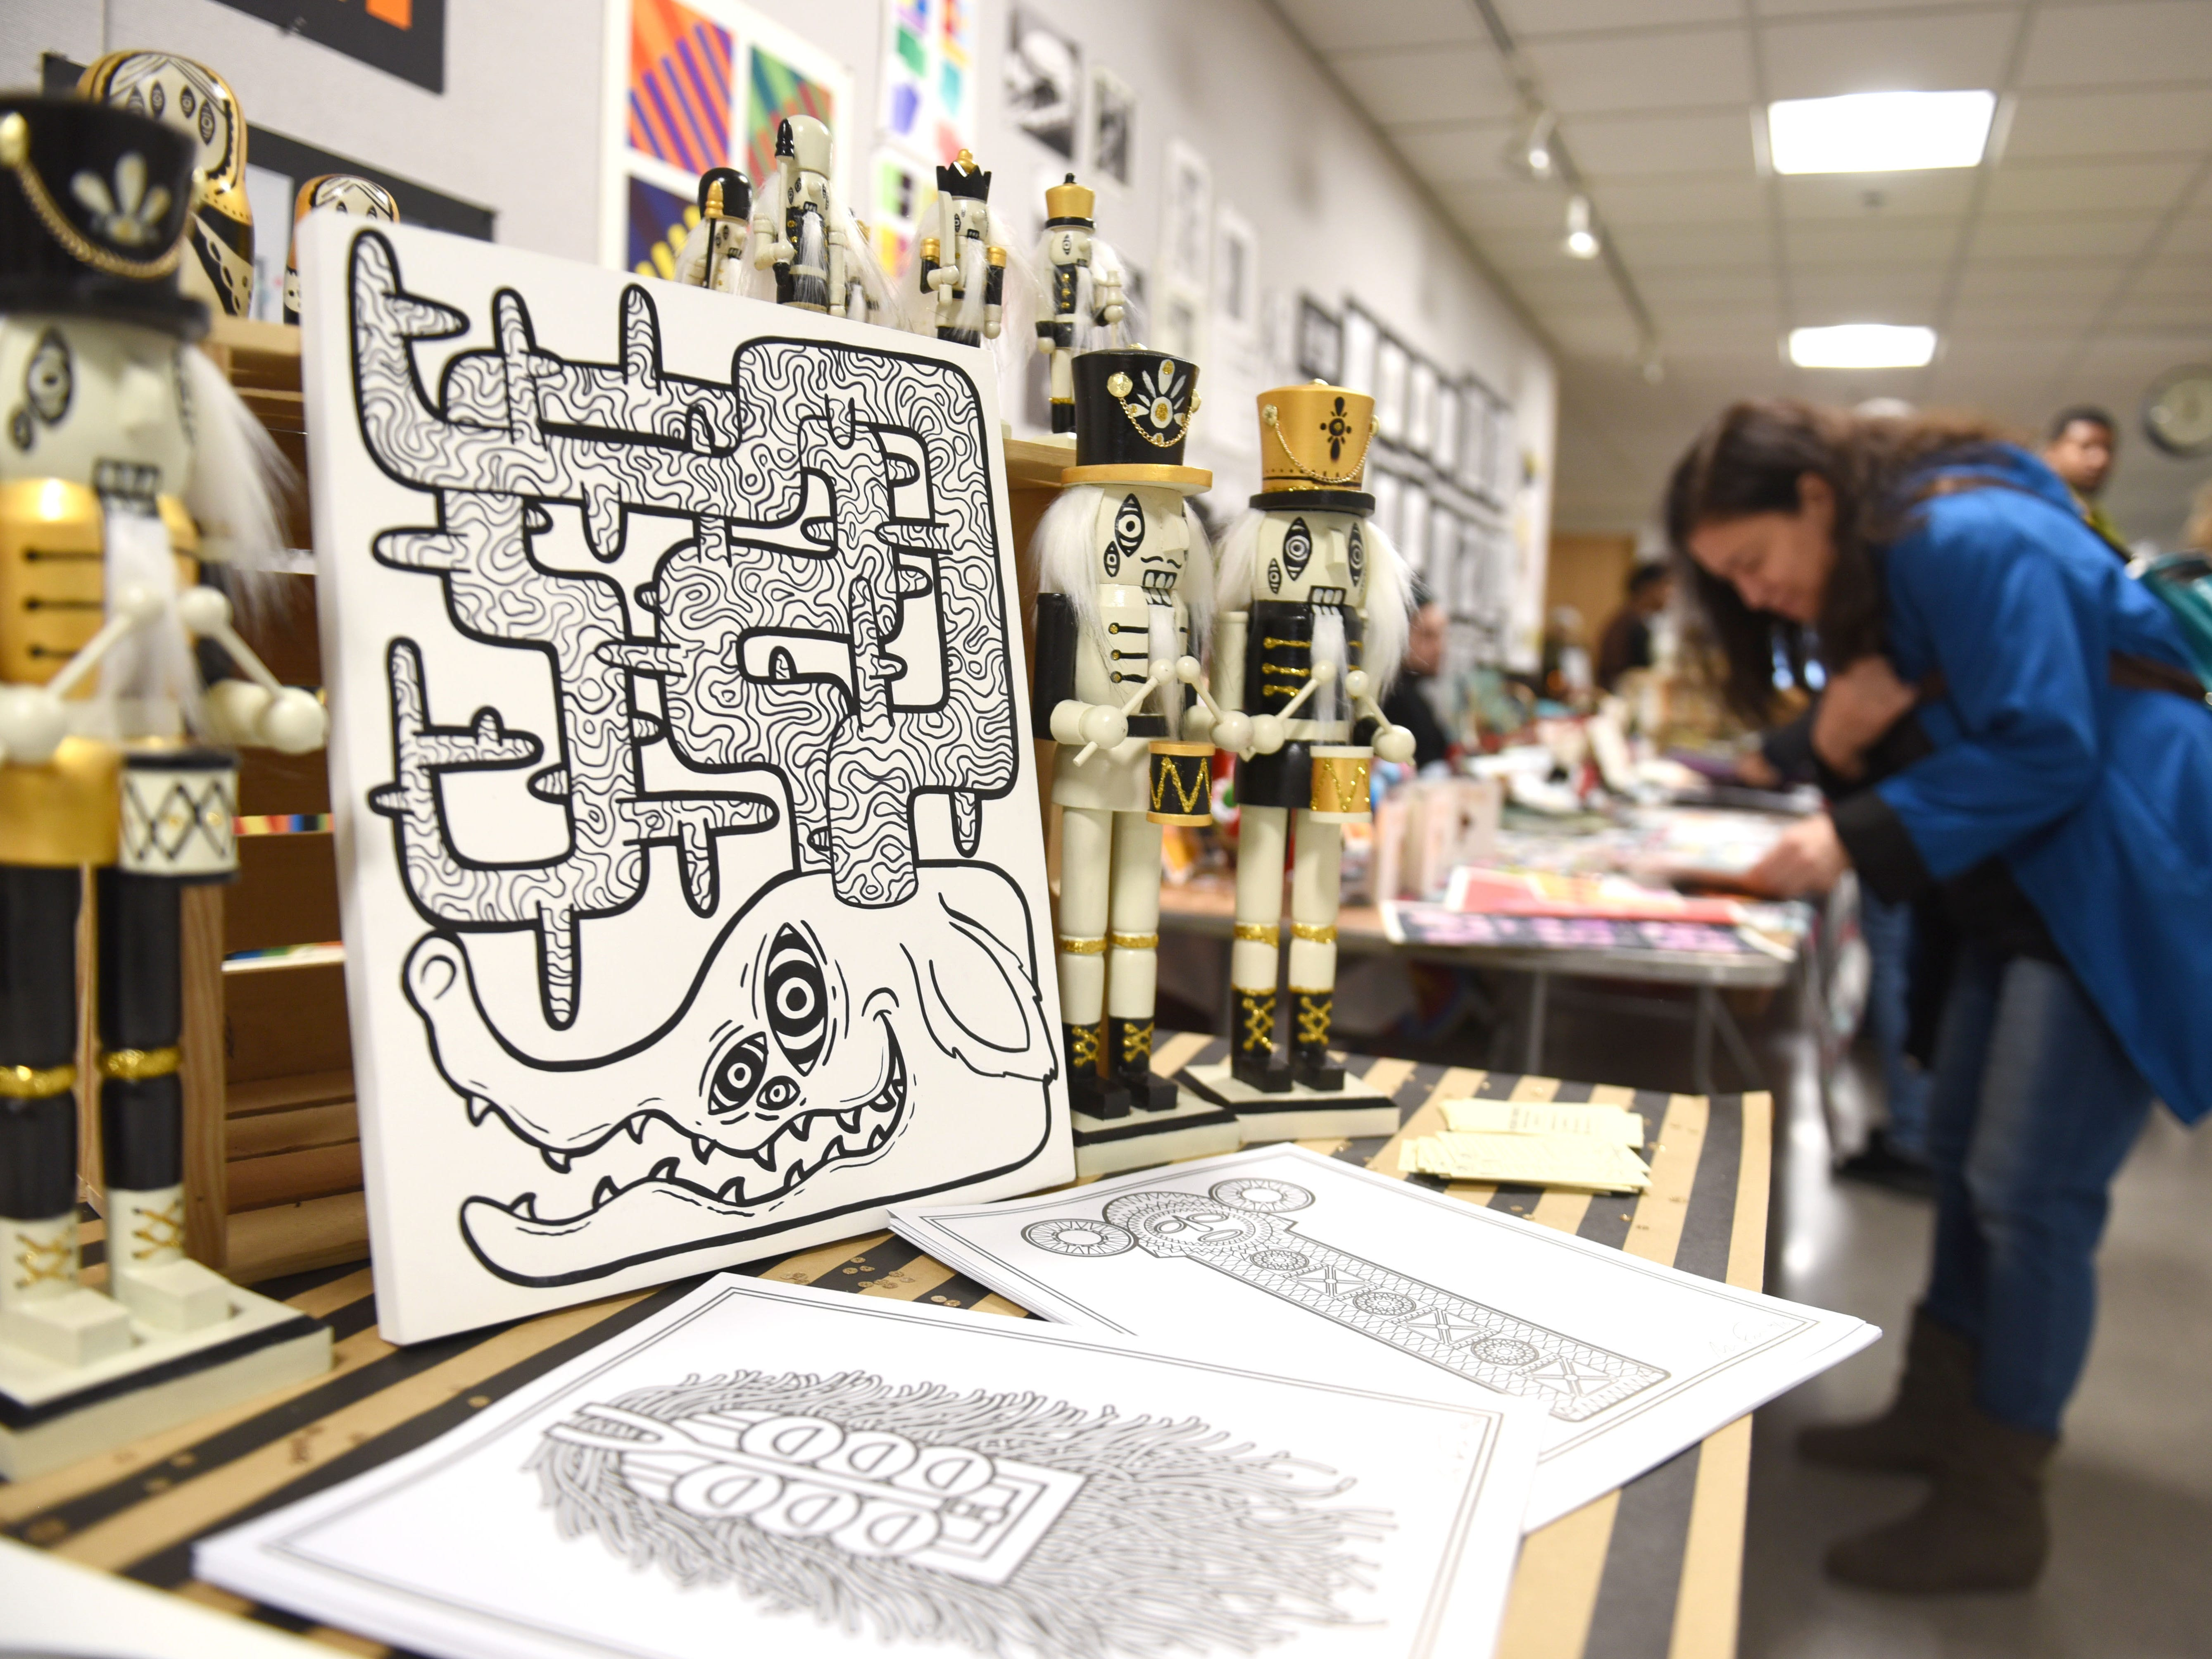 The hand drawn artwork (left) of CCS student Melanie Formica is displayed during the Annual Student Alumni Art Sale at the College of Creative Studies during Noel Night.